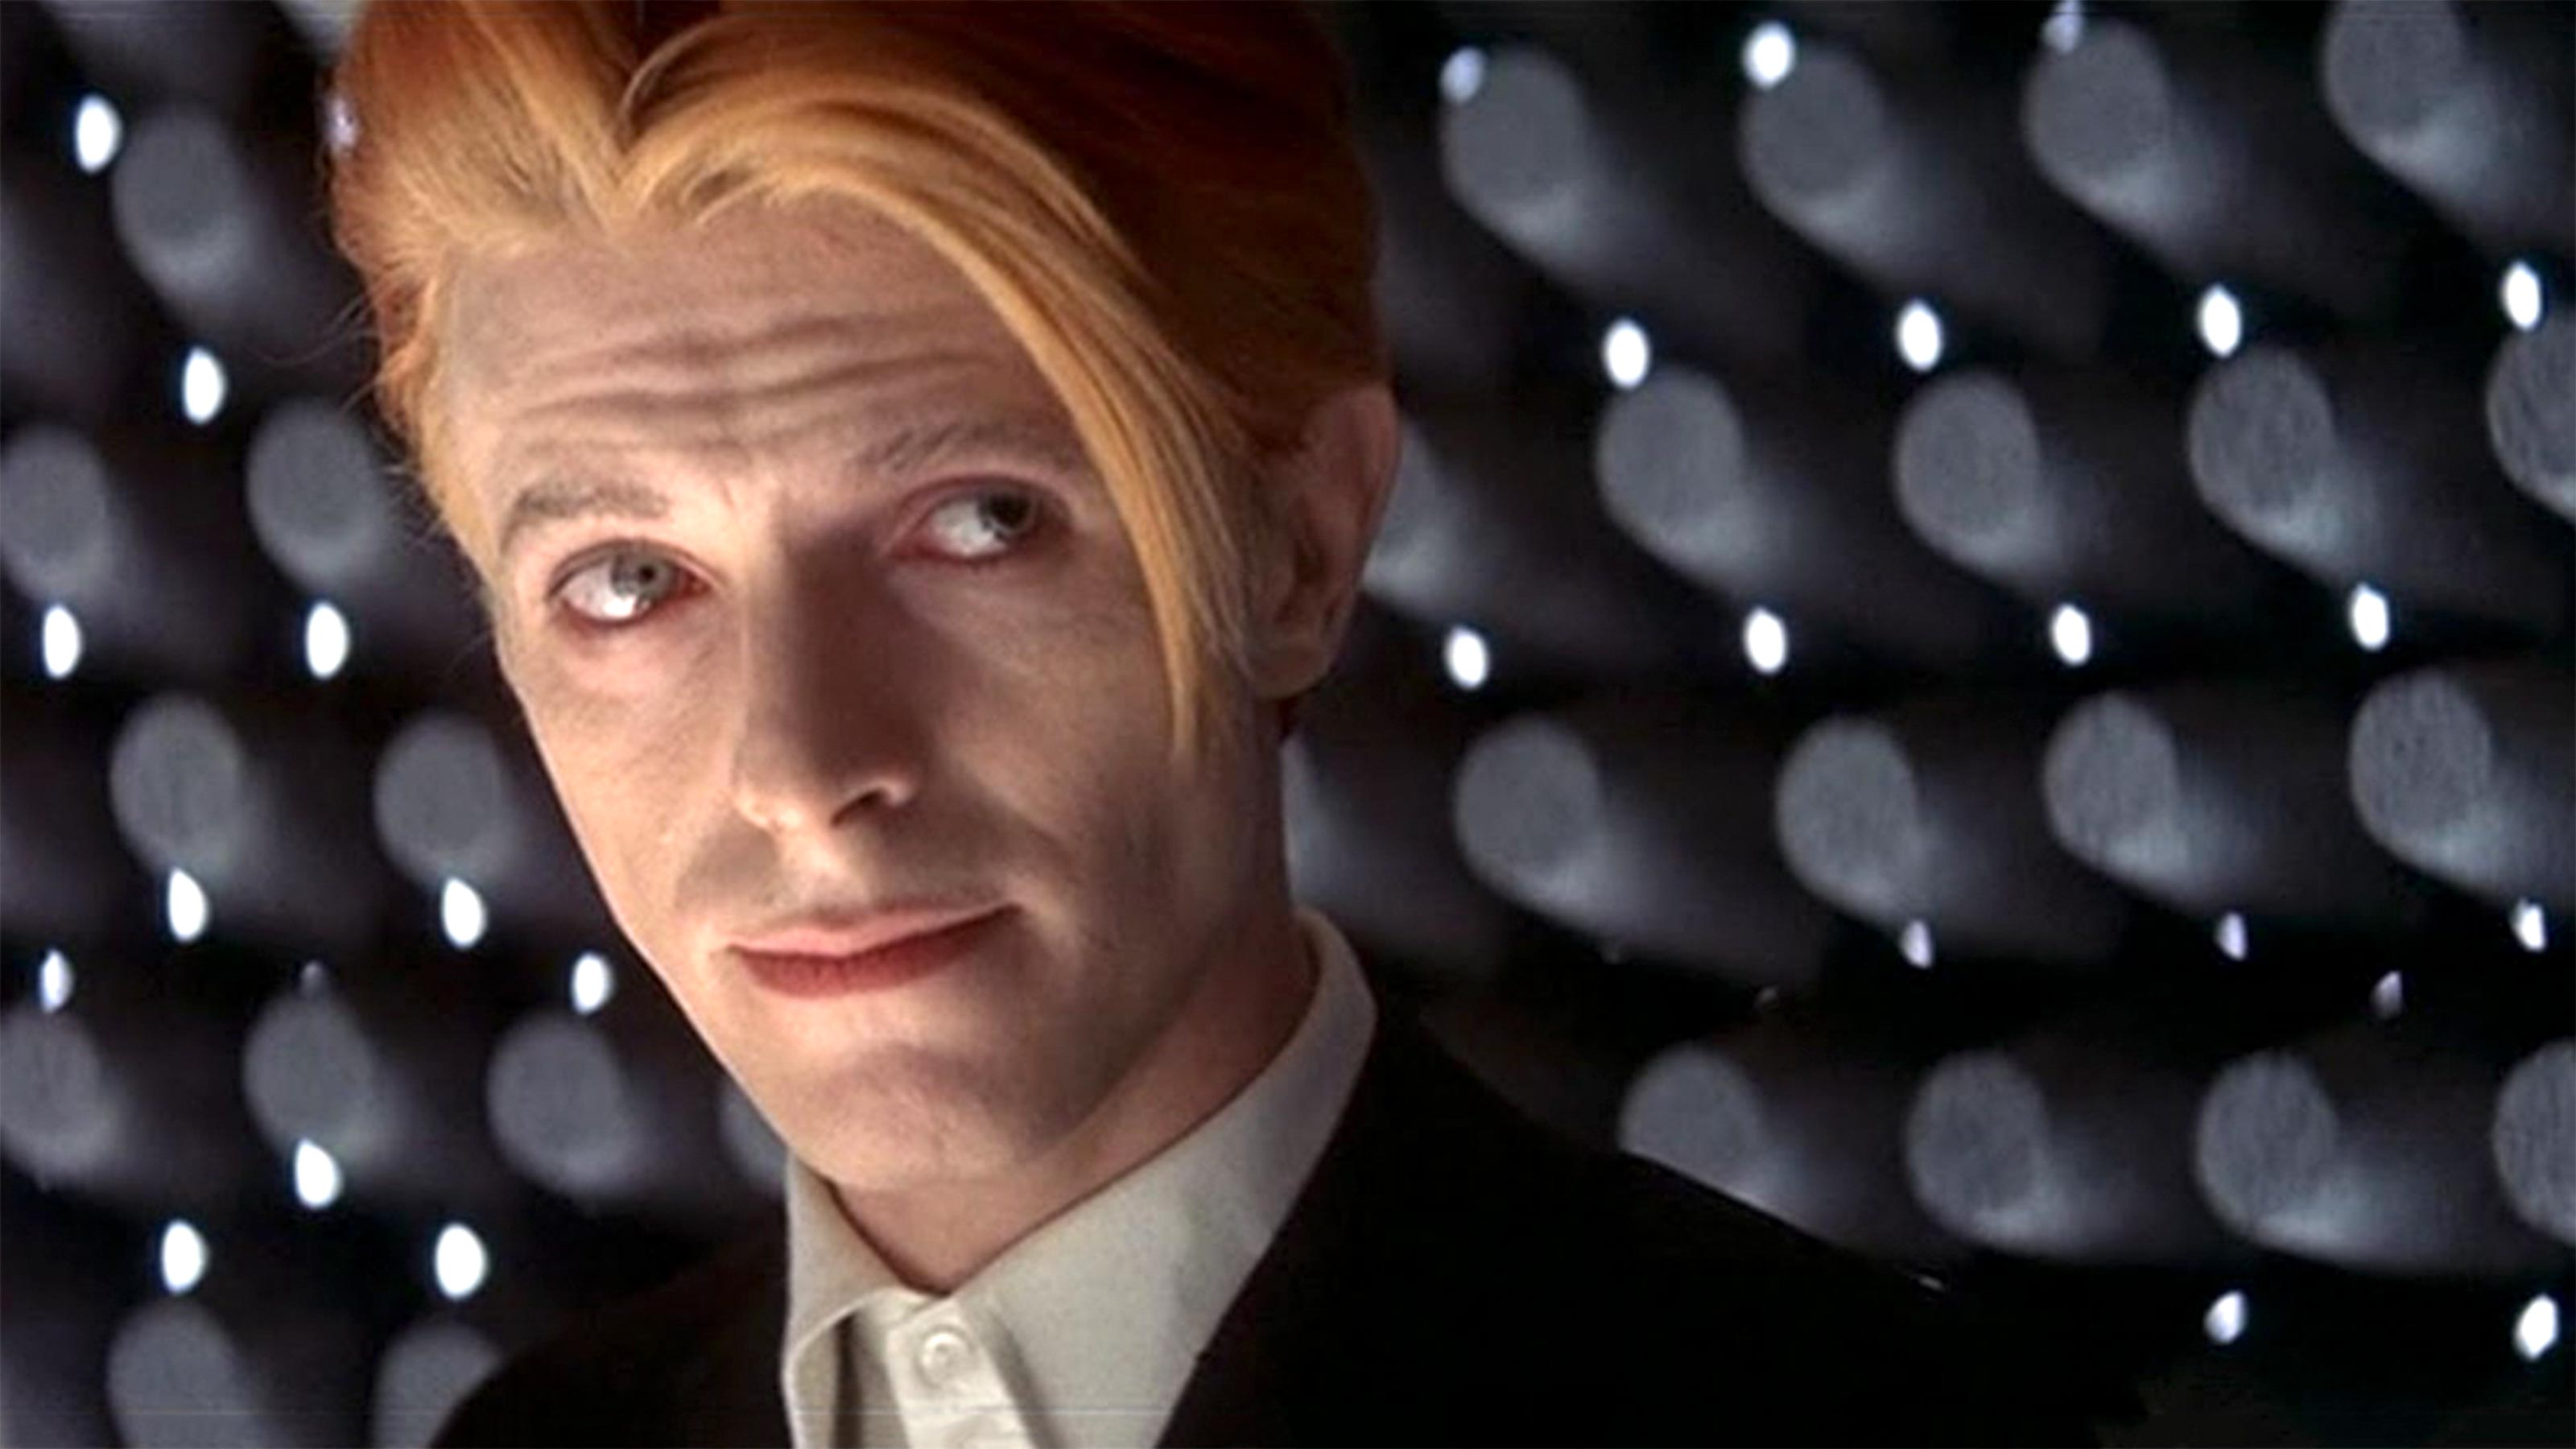 Man Who Fell to Earth TV series coming from Star Trek producer